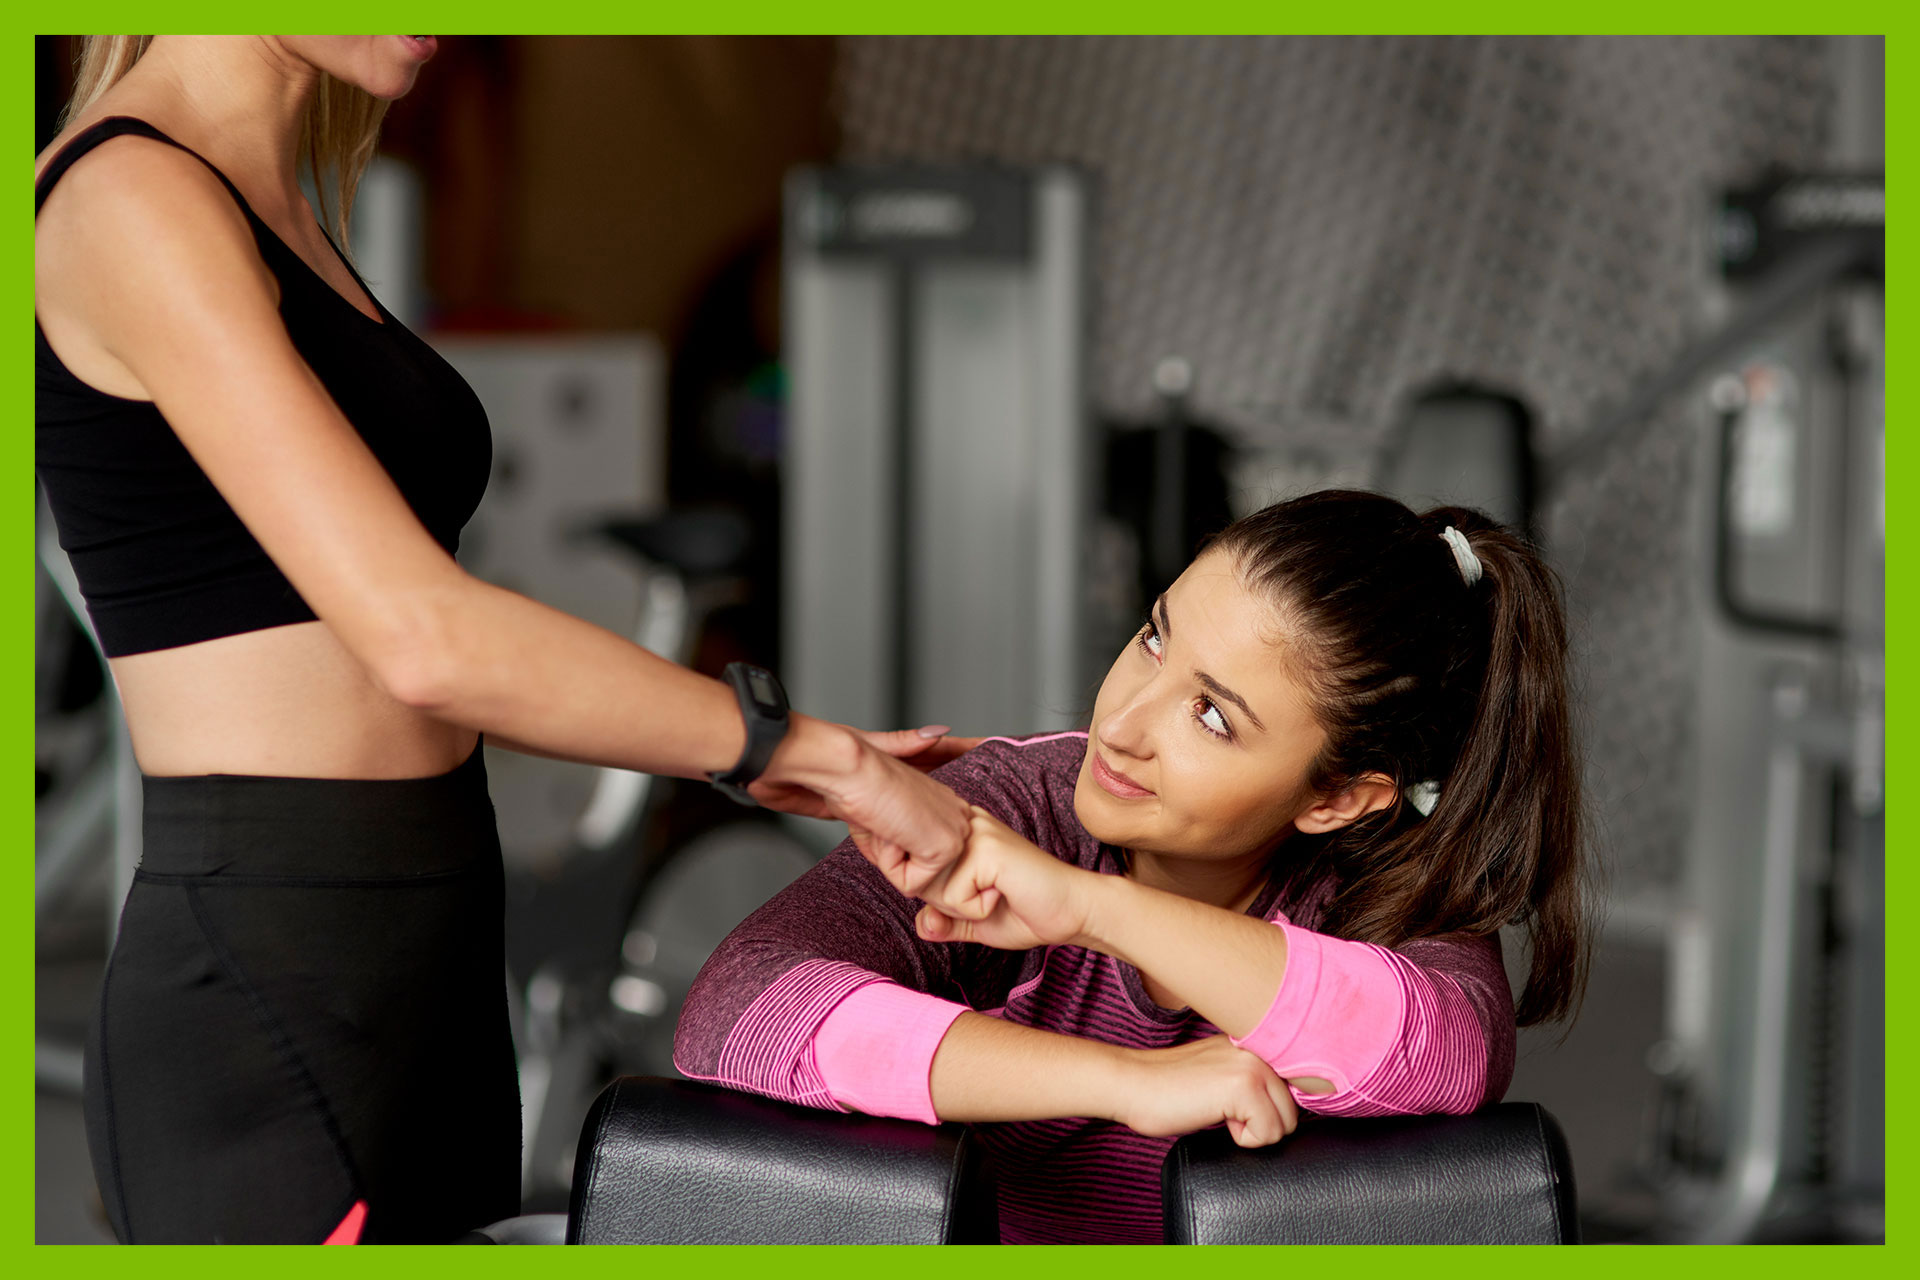 Three personal training sessions for the price of one at our fitness center and gym in Denver, Colorado.